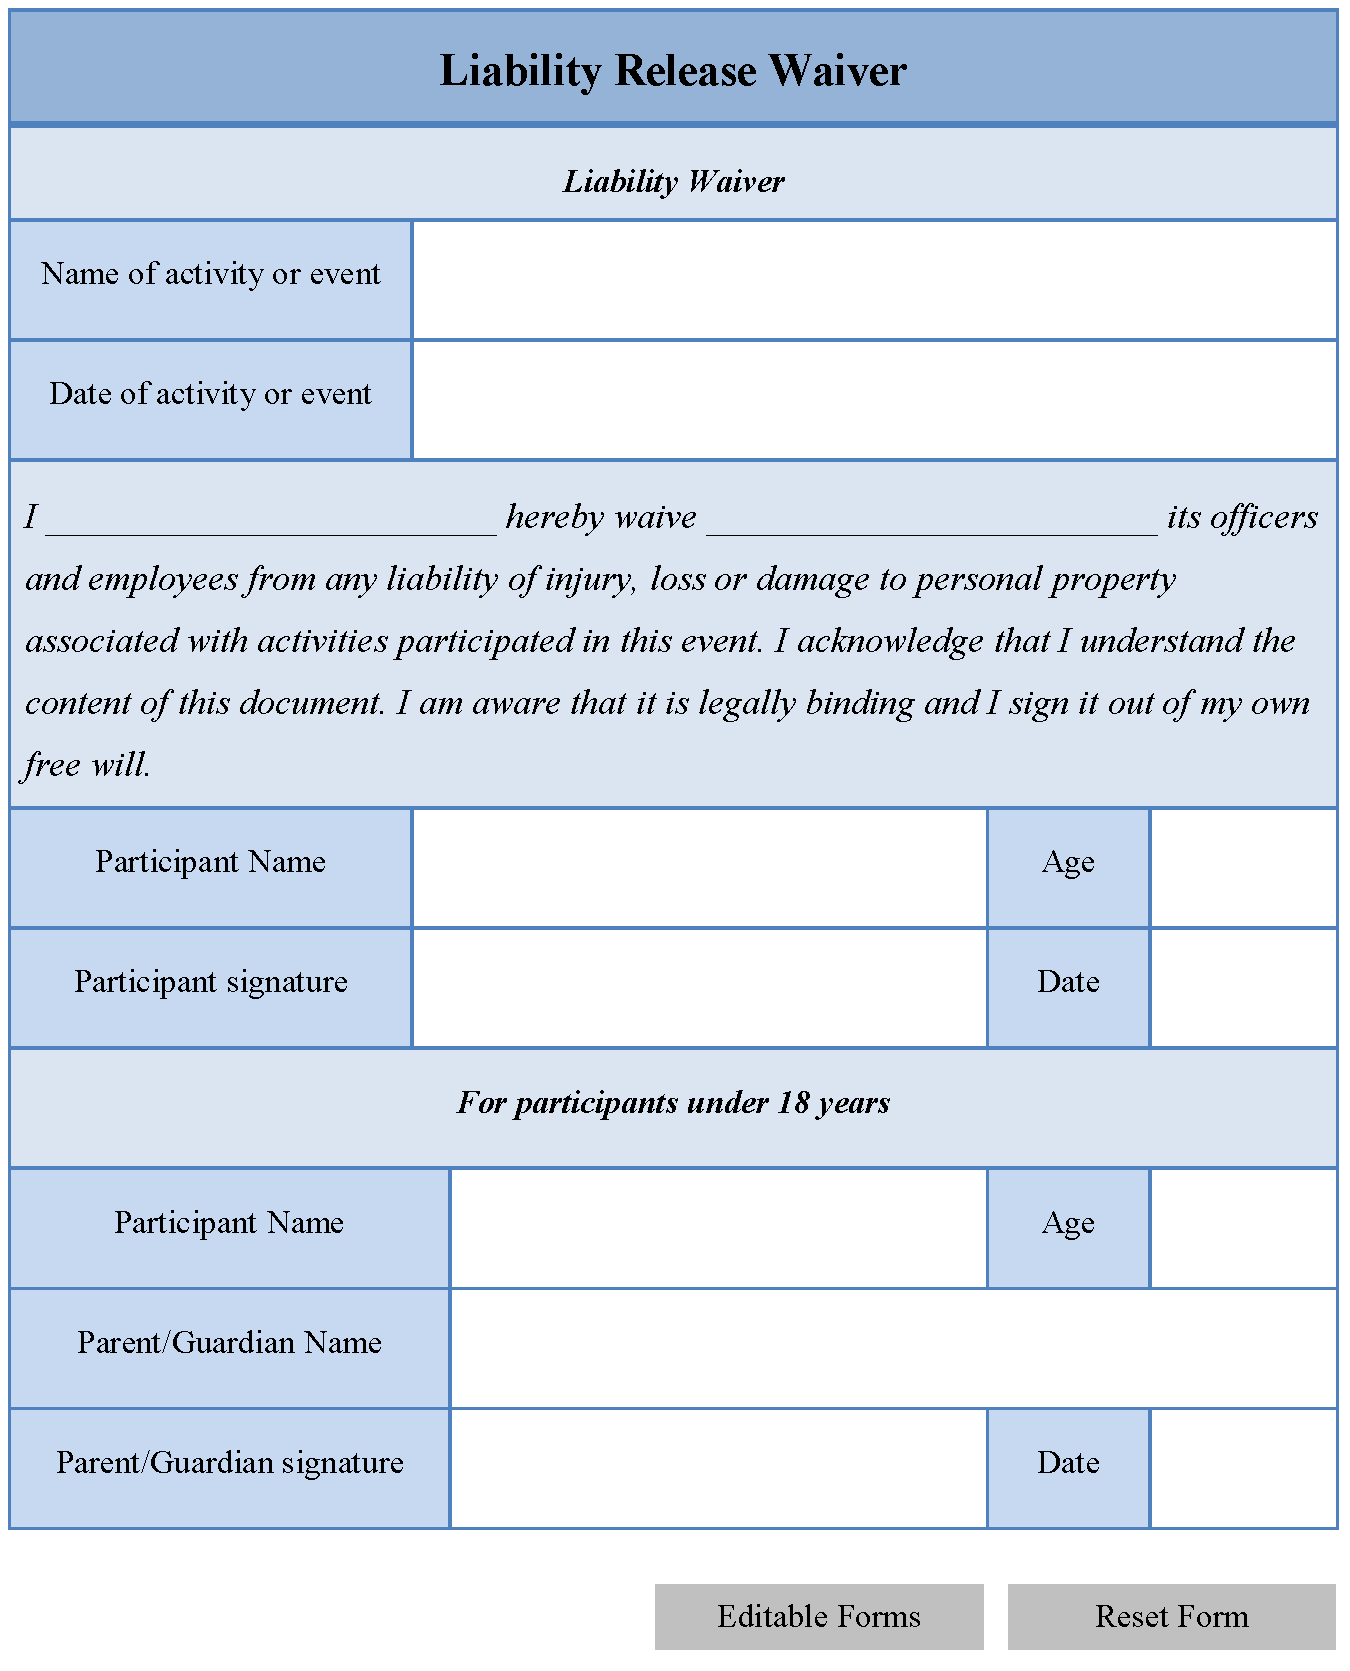 Liability Waiver Form – Waiver of Liability Form Free